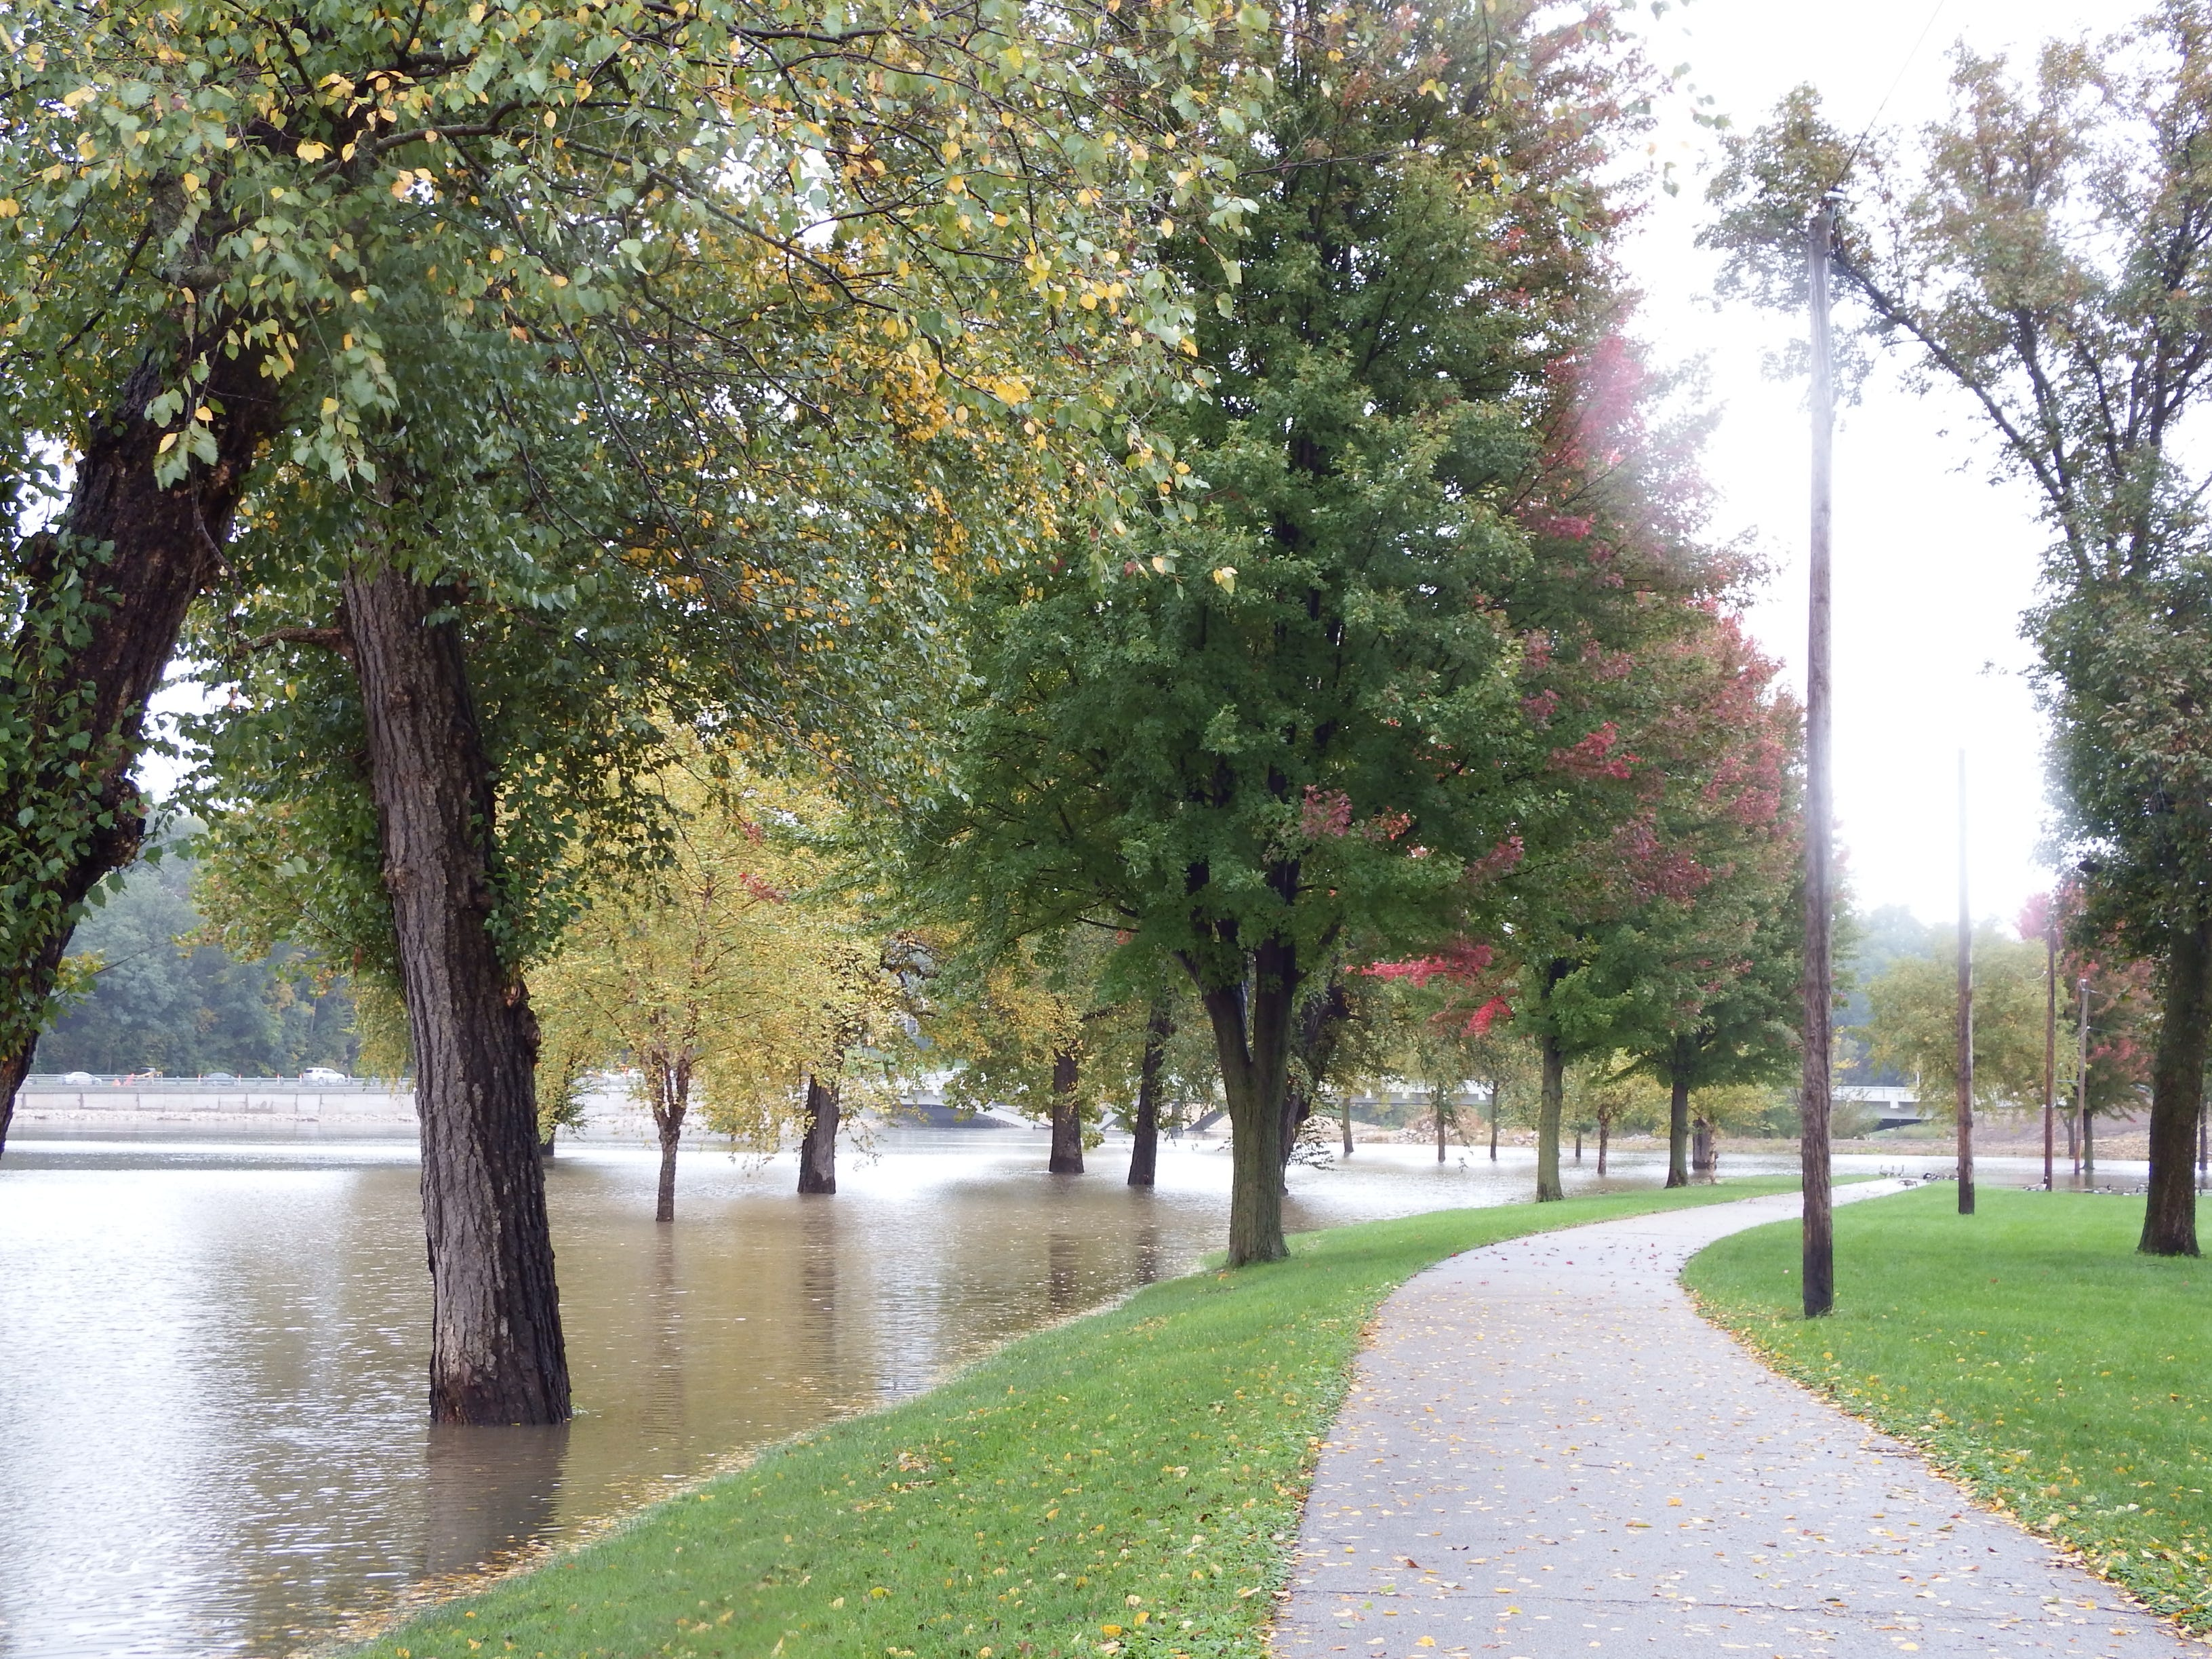 Flood water encroaches on City Park.